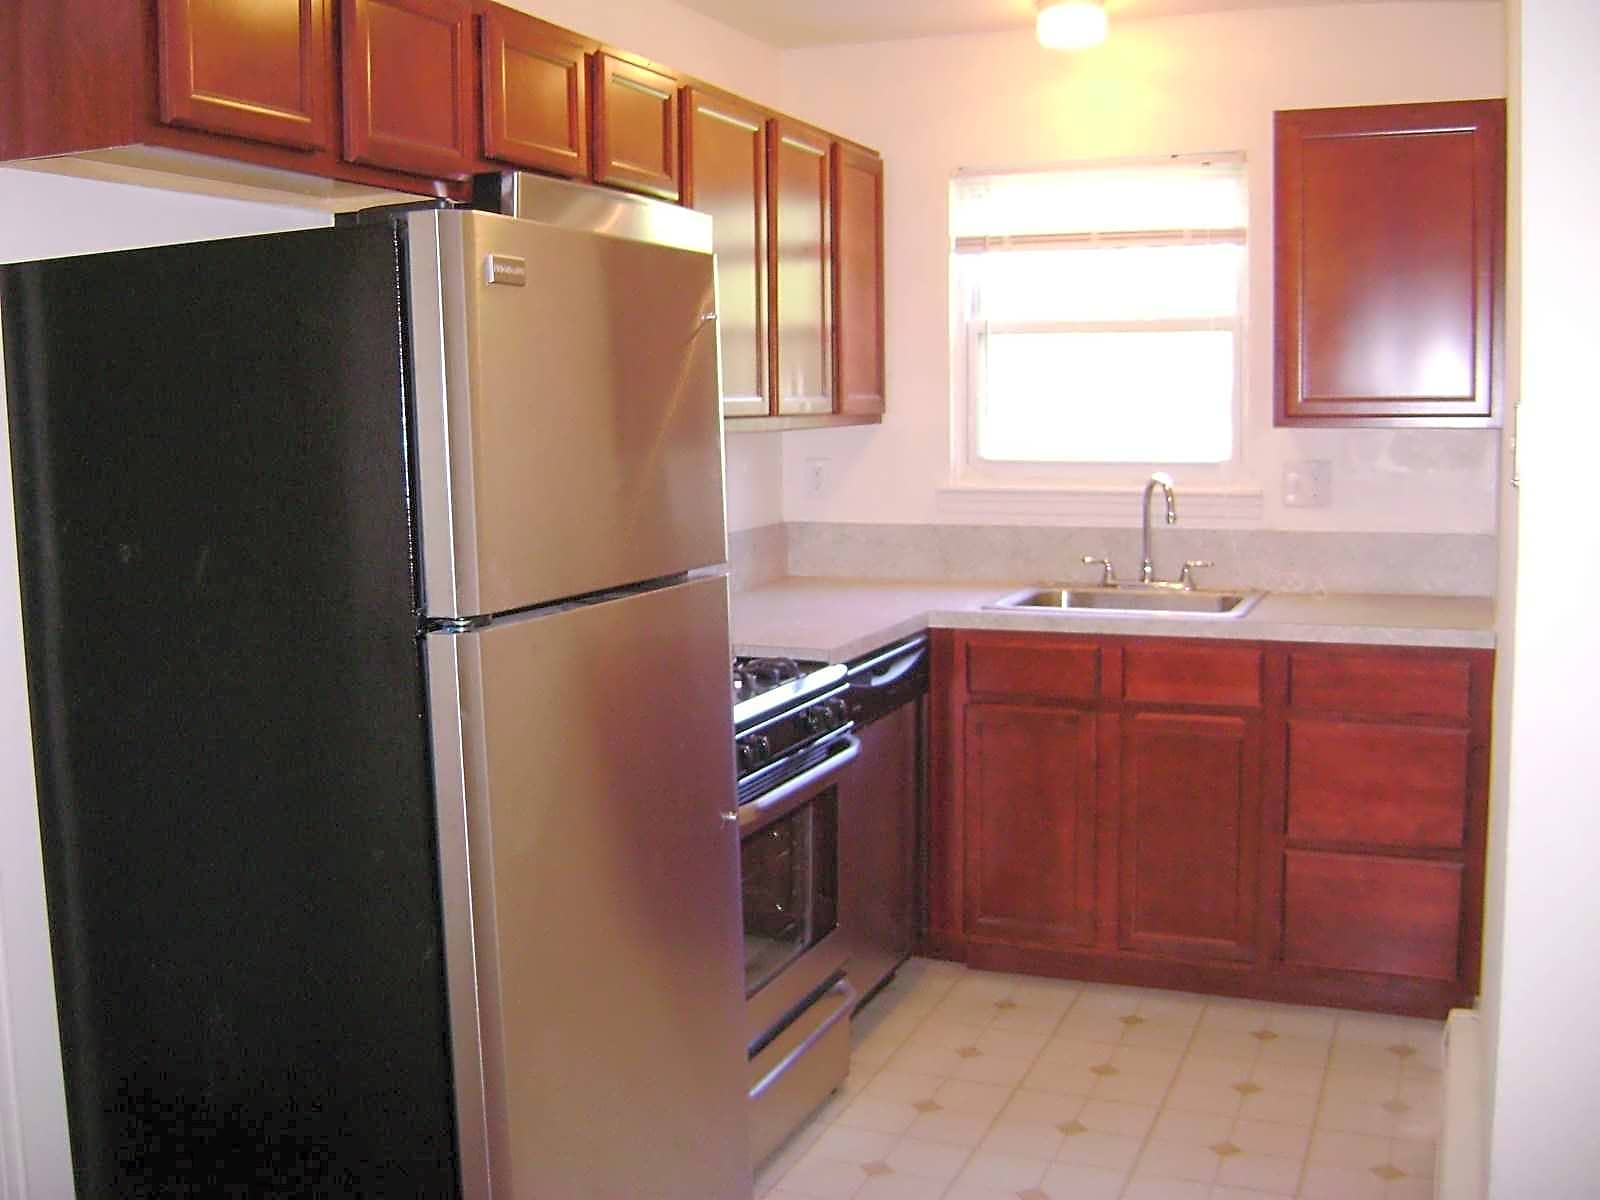 Photo: Neptune Apartment for Rent - $1140.00 / month; 1 Bd & 1 Ba